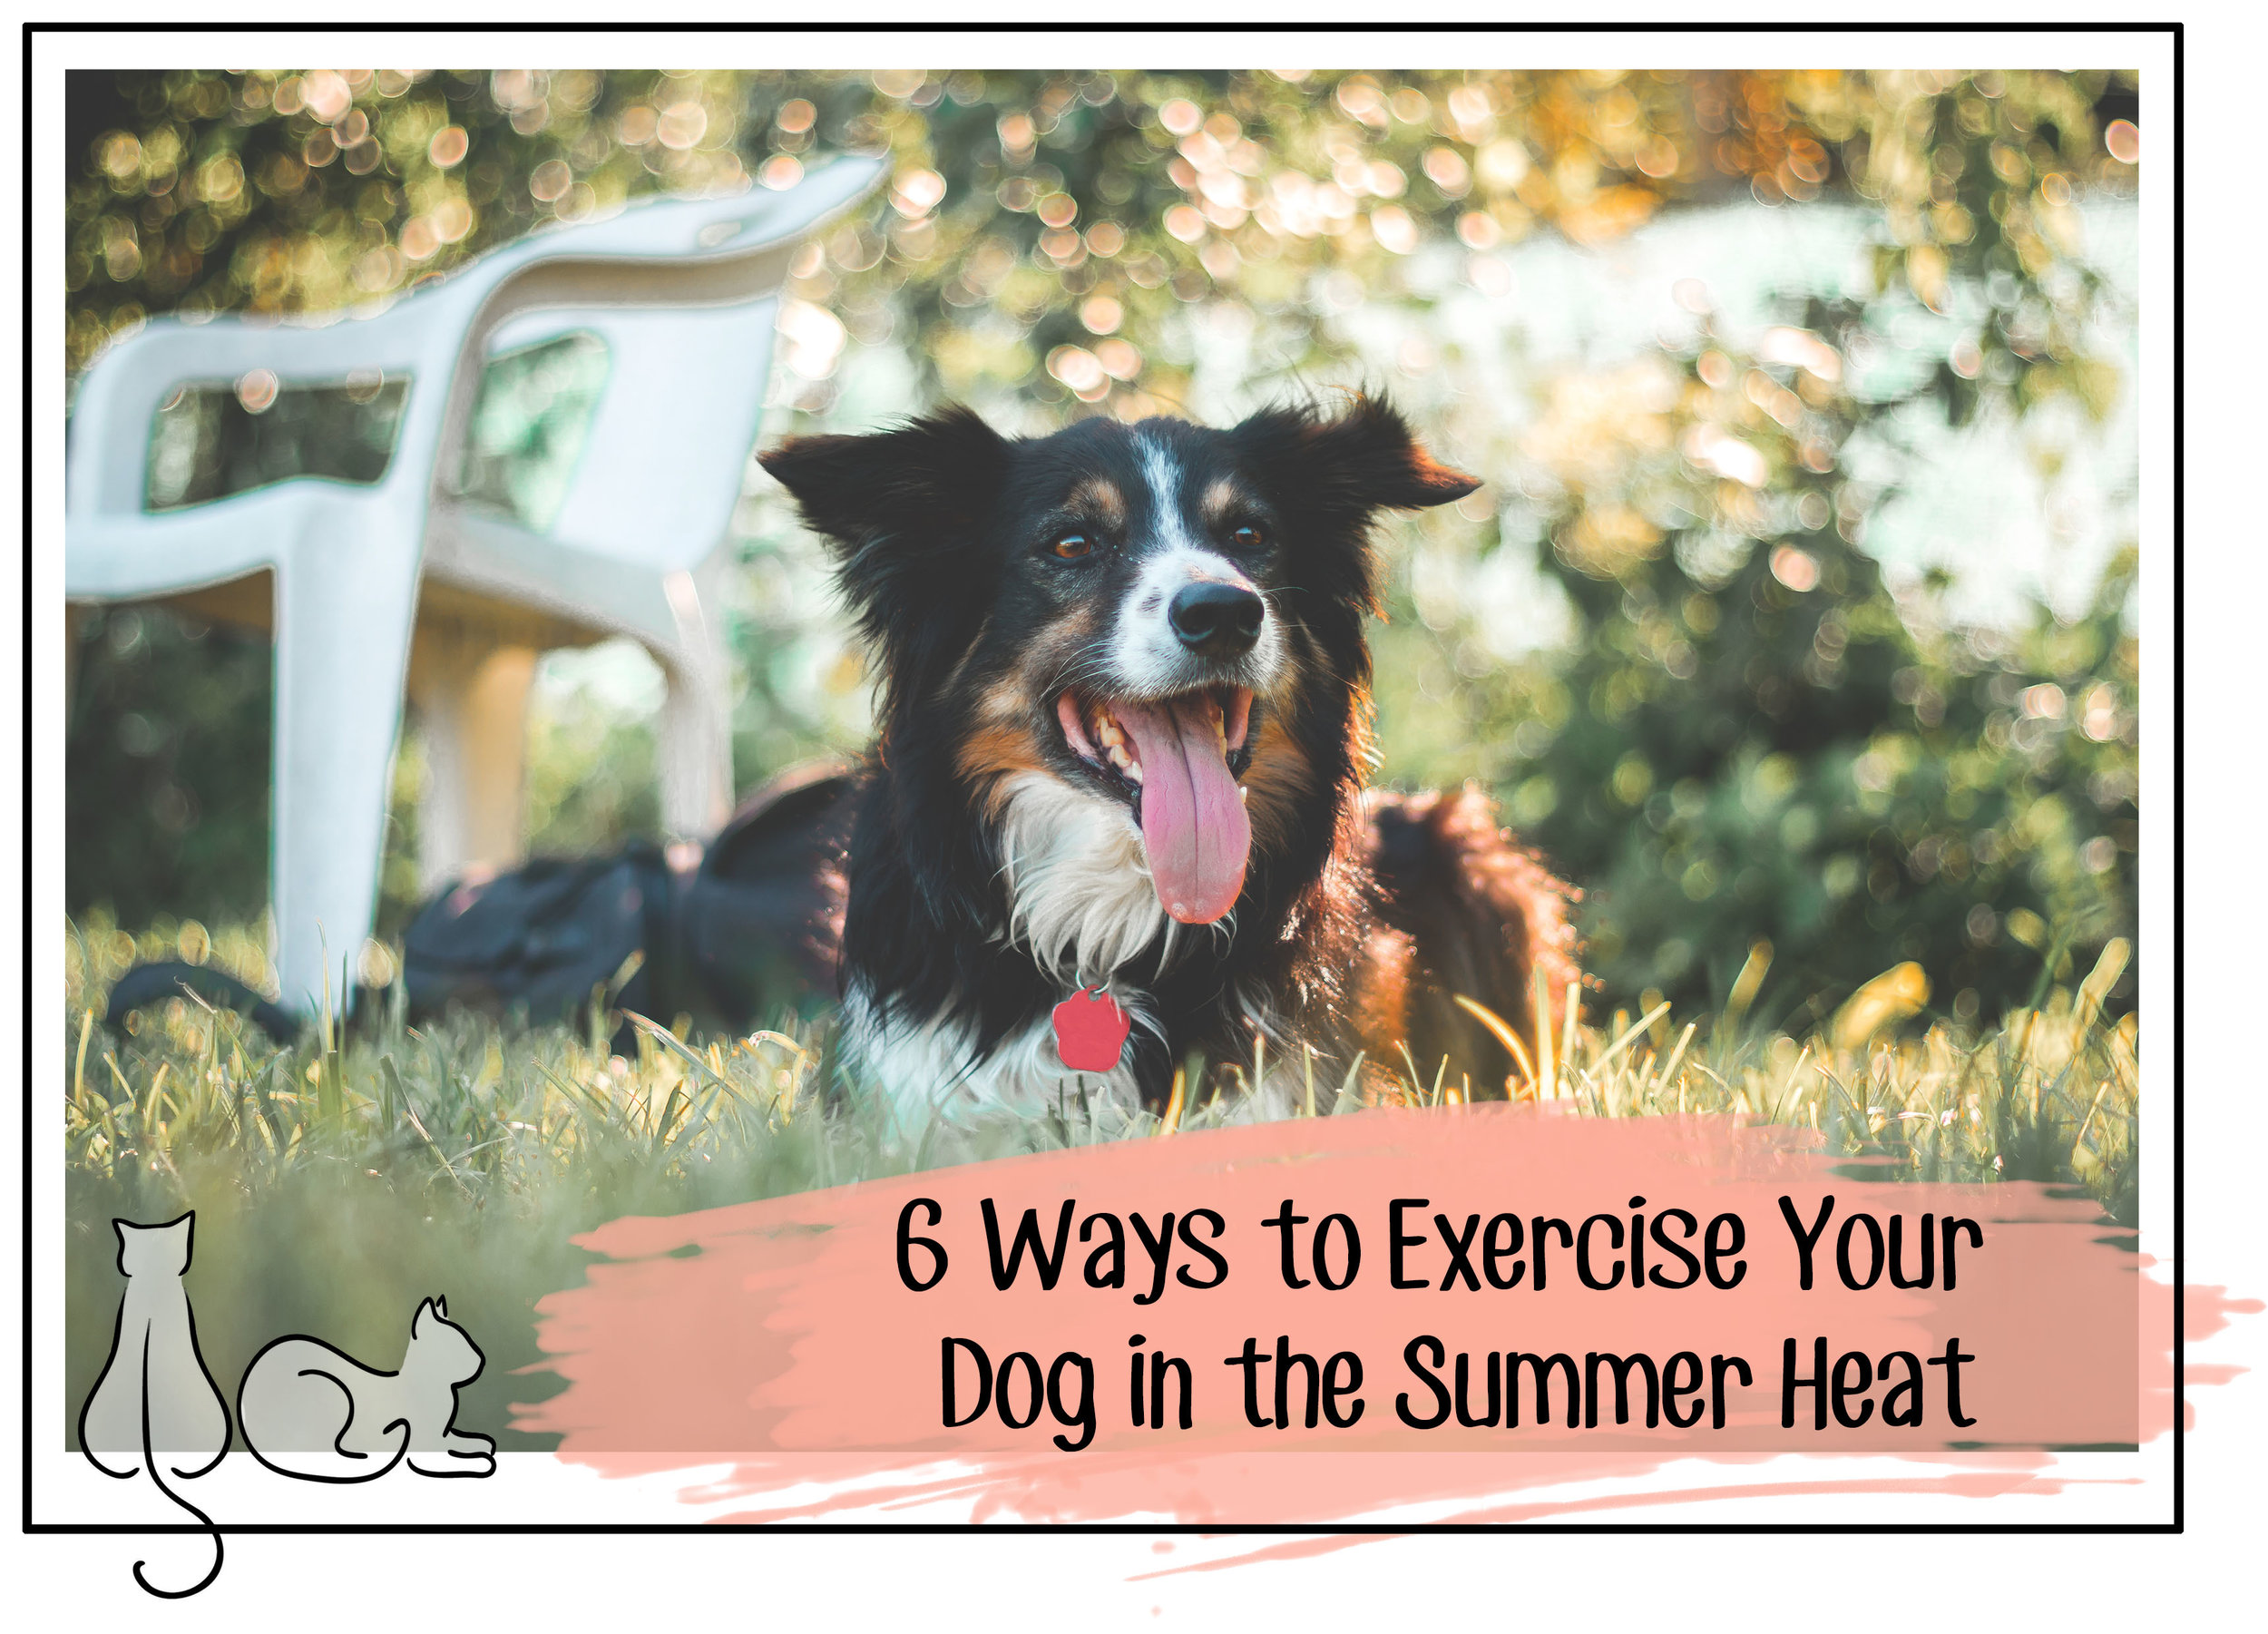 exercise dog summer header.jpg